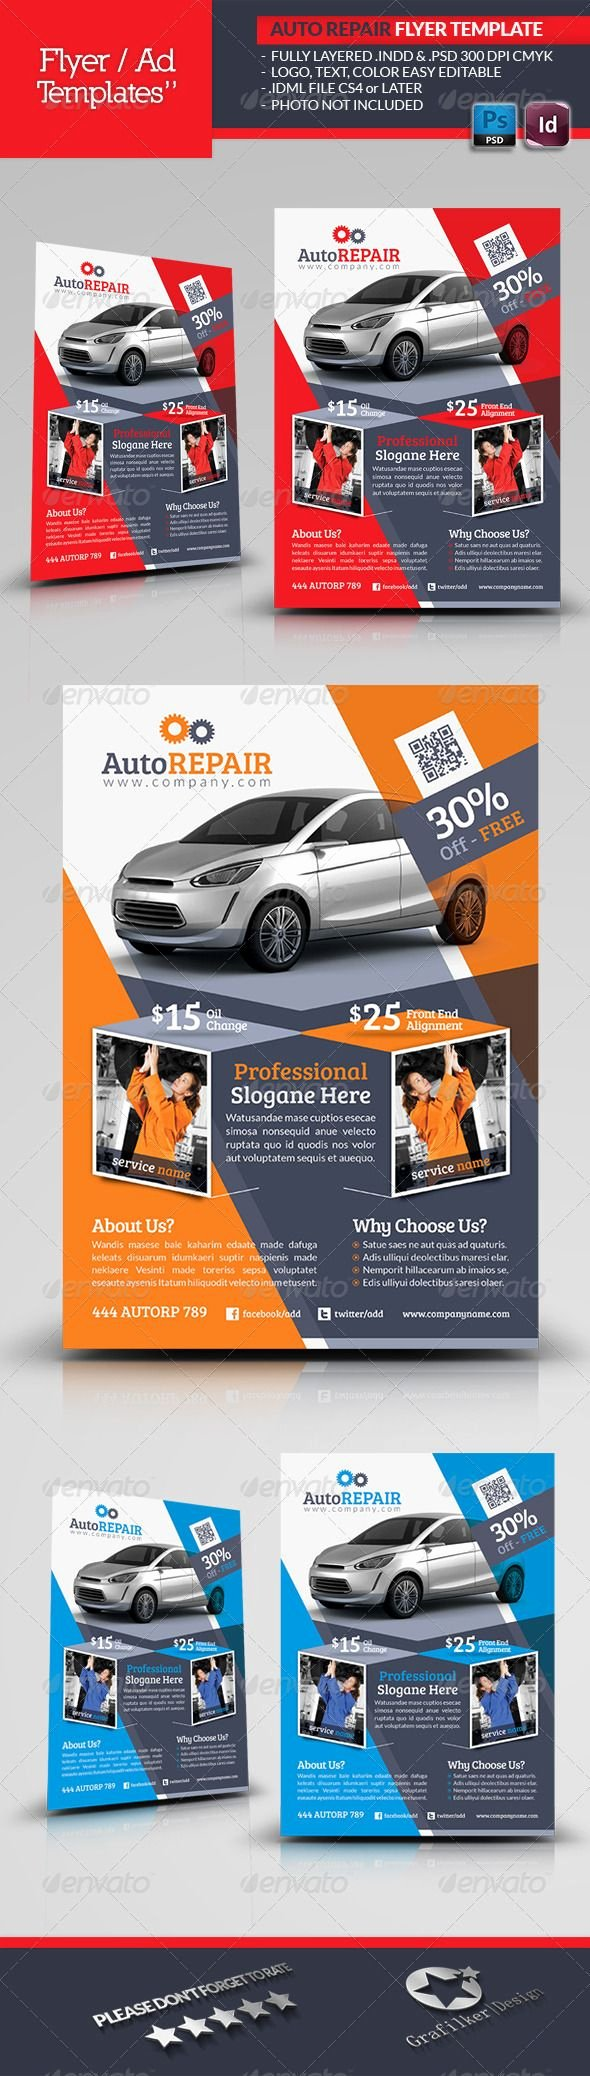 Auto Repair Template Free Luxury Automobile Repair Flyer Template